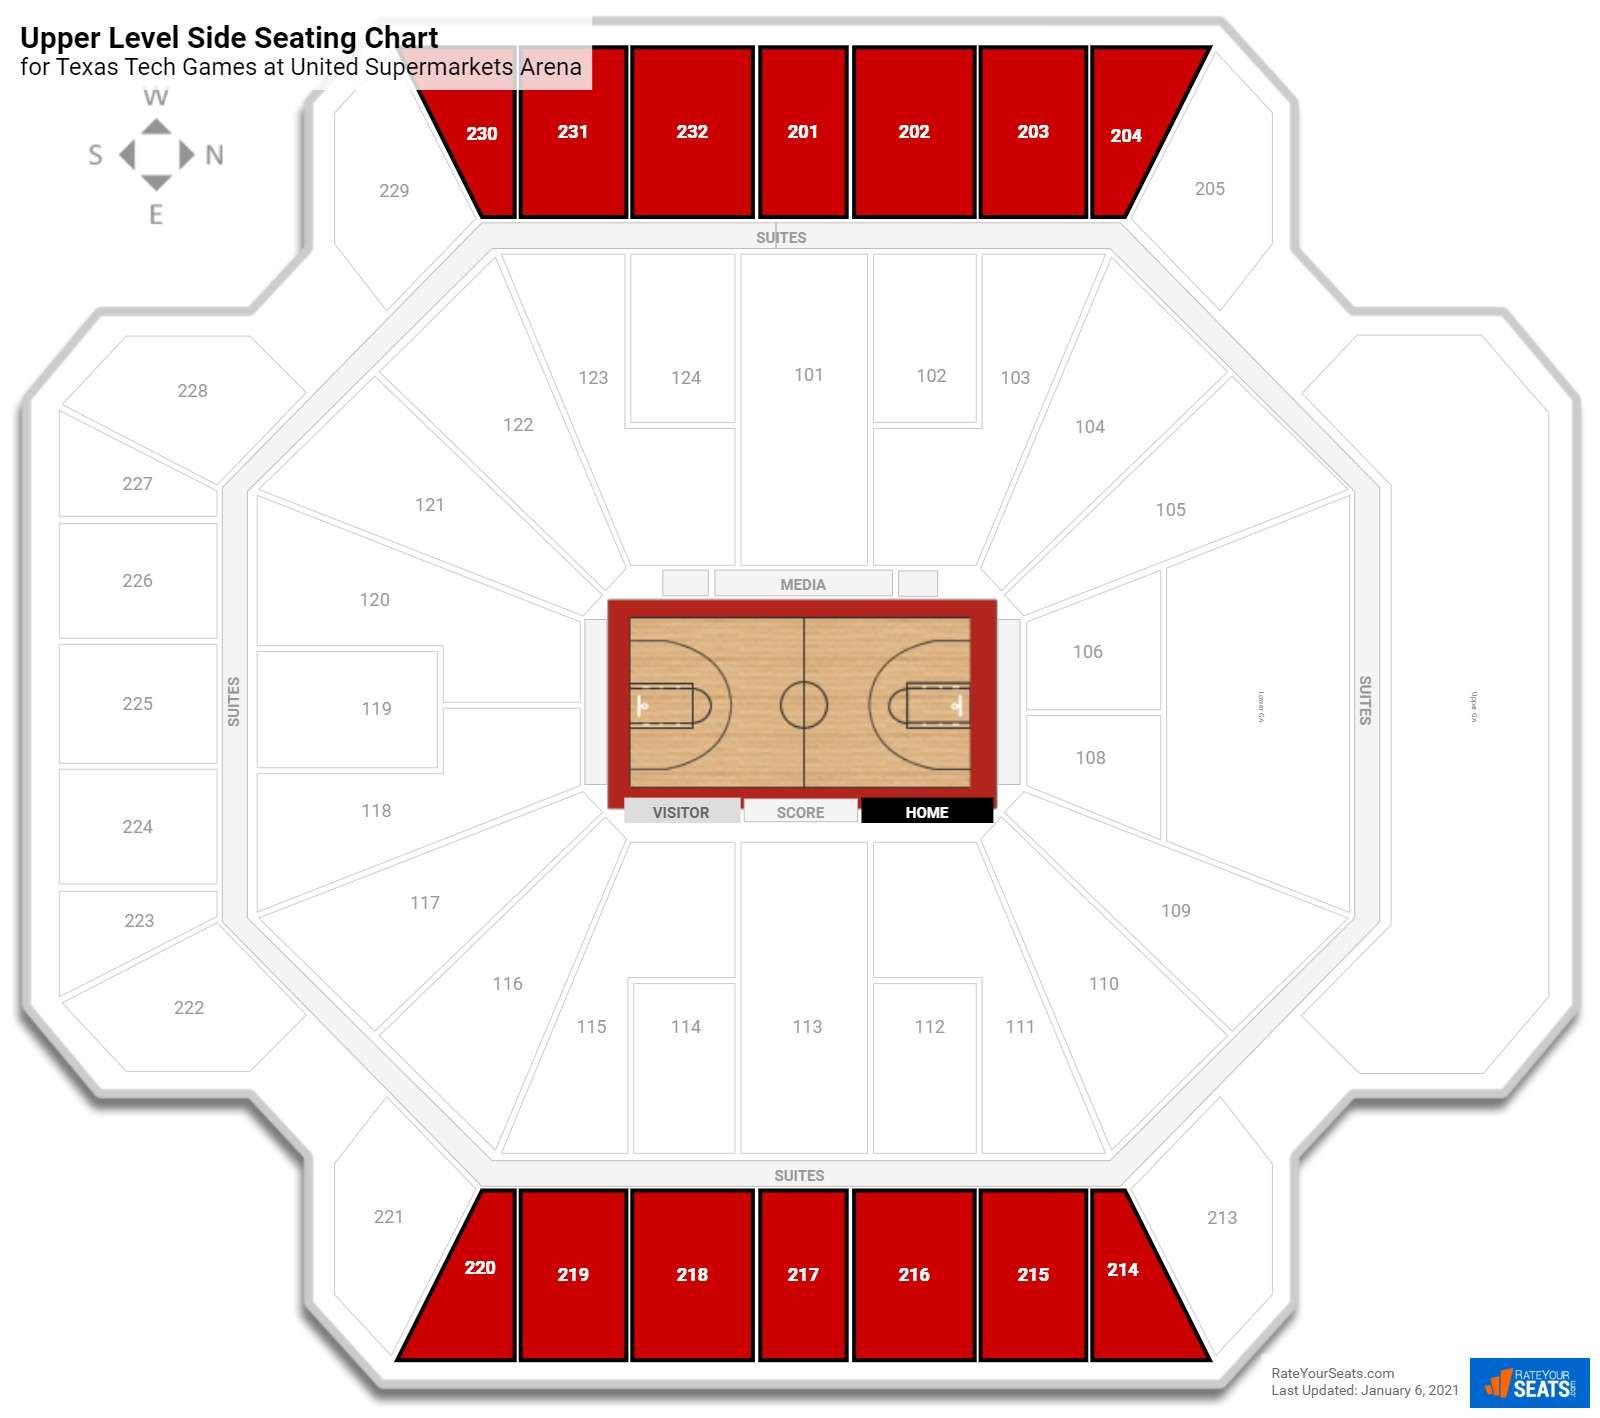 United Supermarkets Arena Upper Level Side Seating Chart